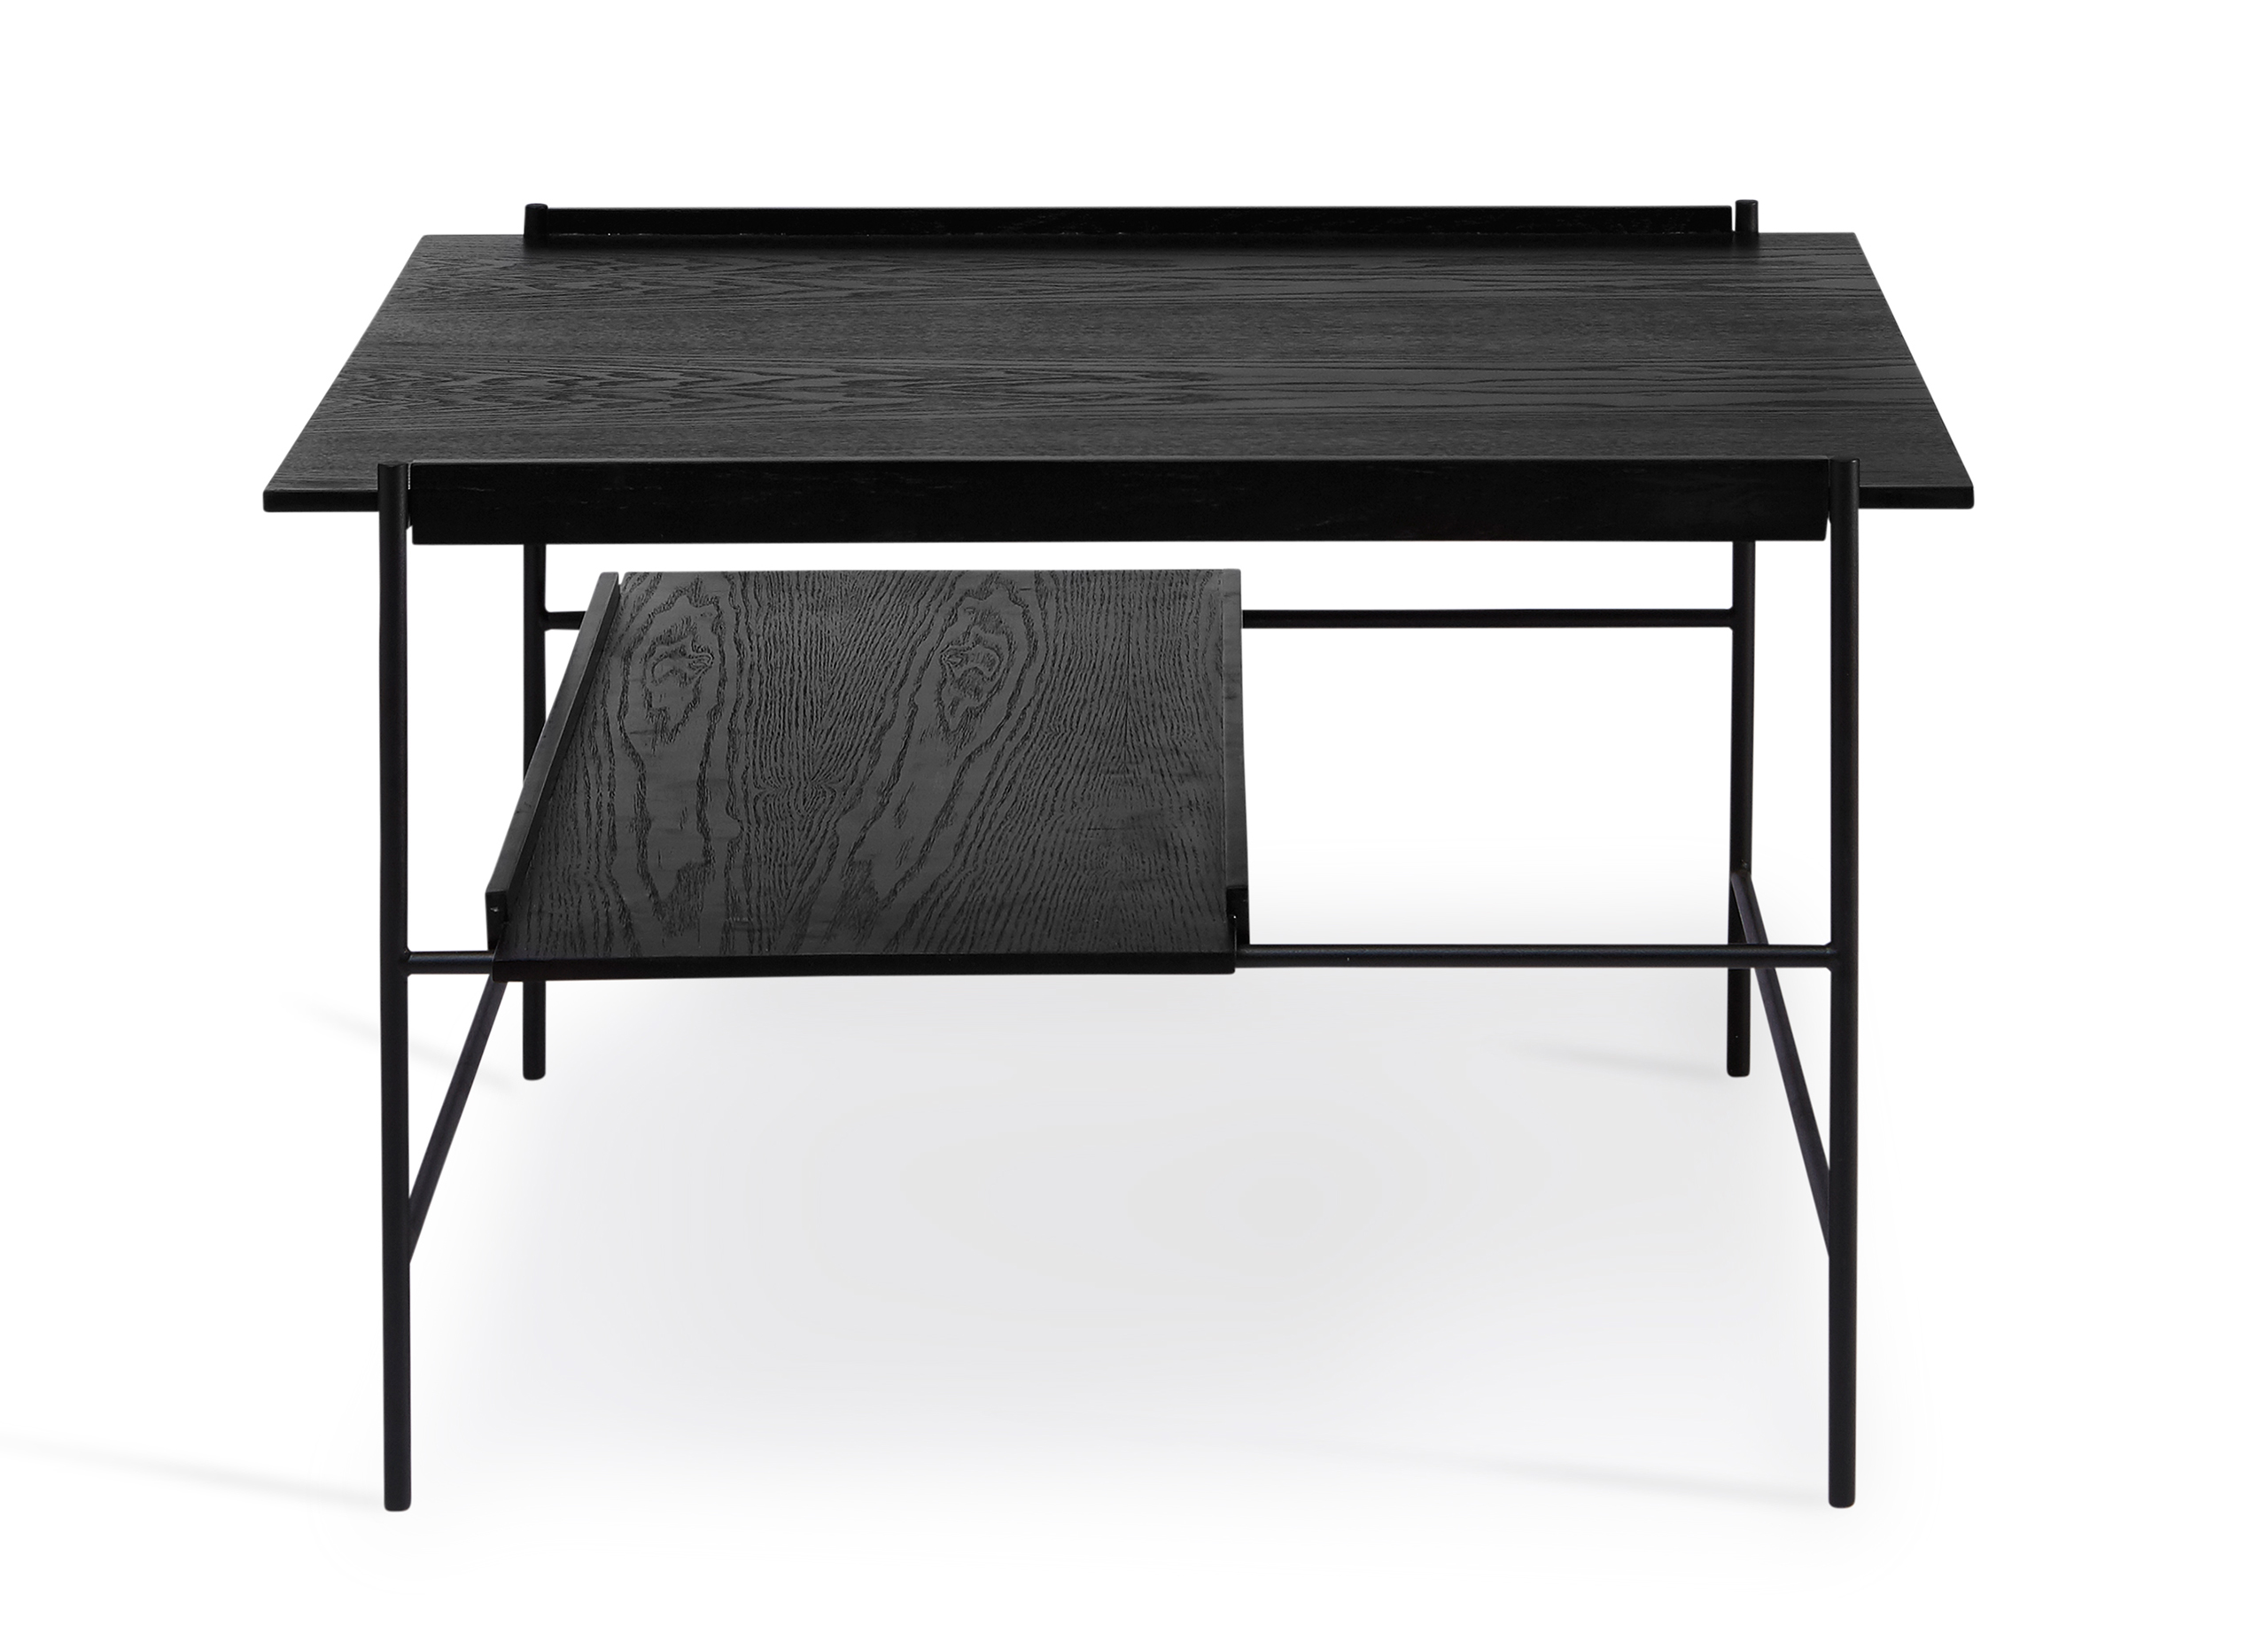 qvest selection kanso coffee table the qvest shop rh qvest de